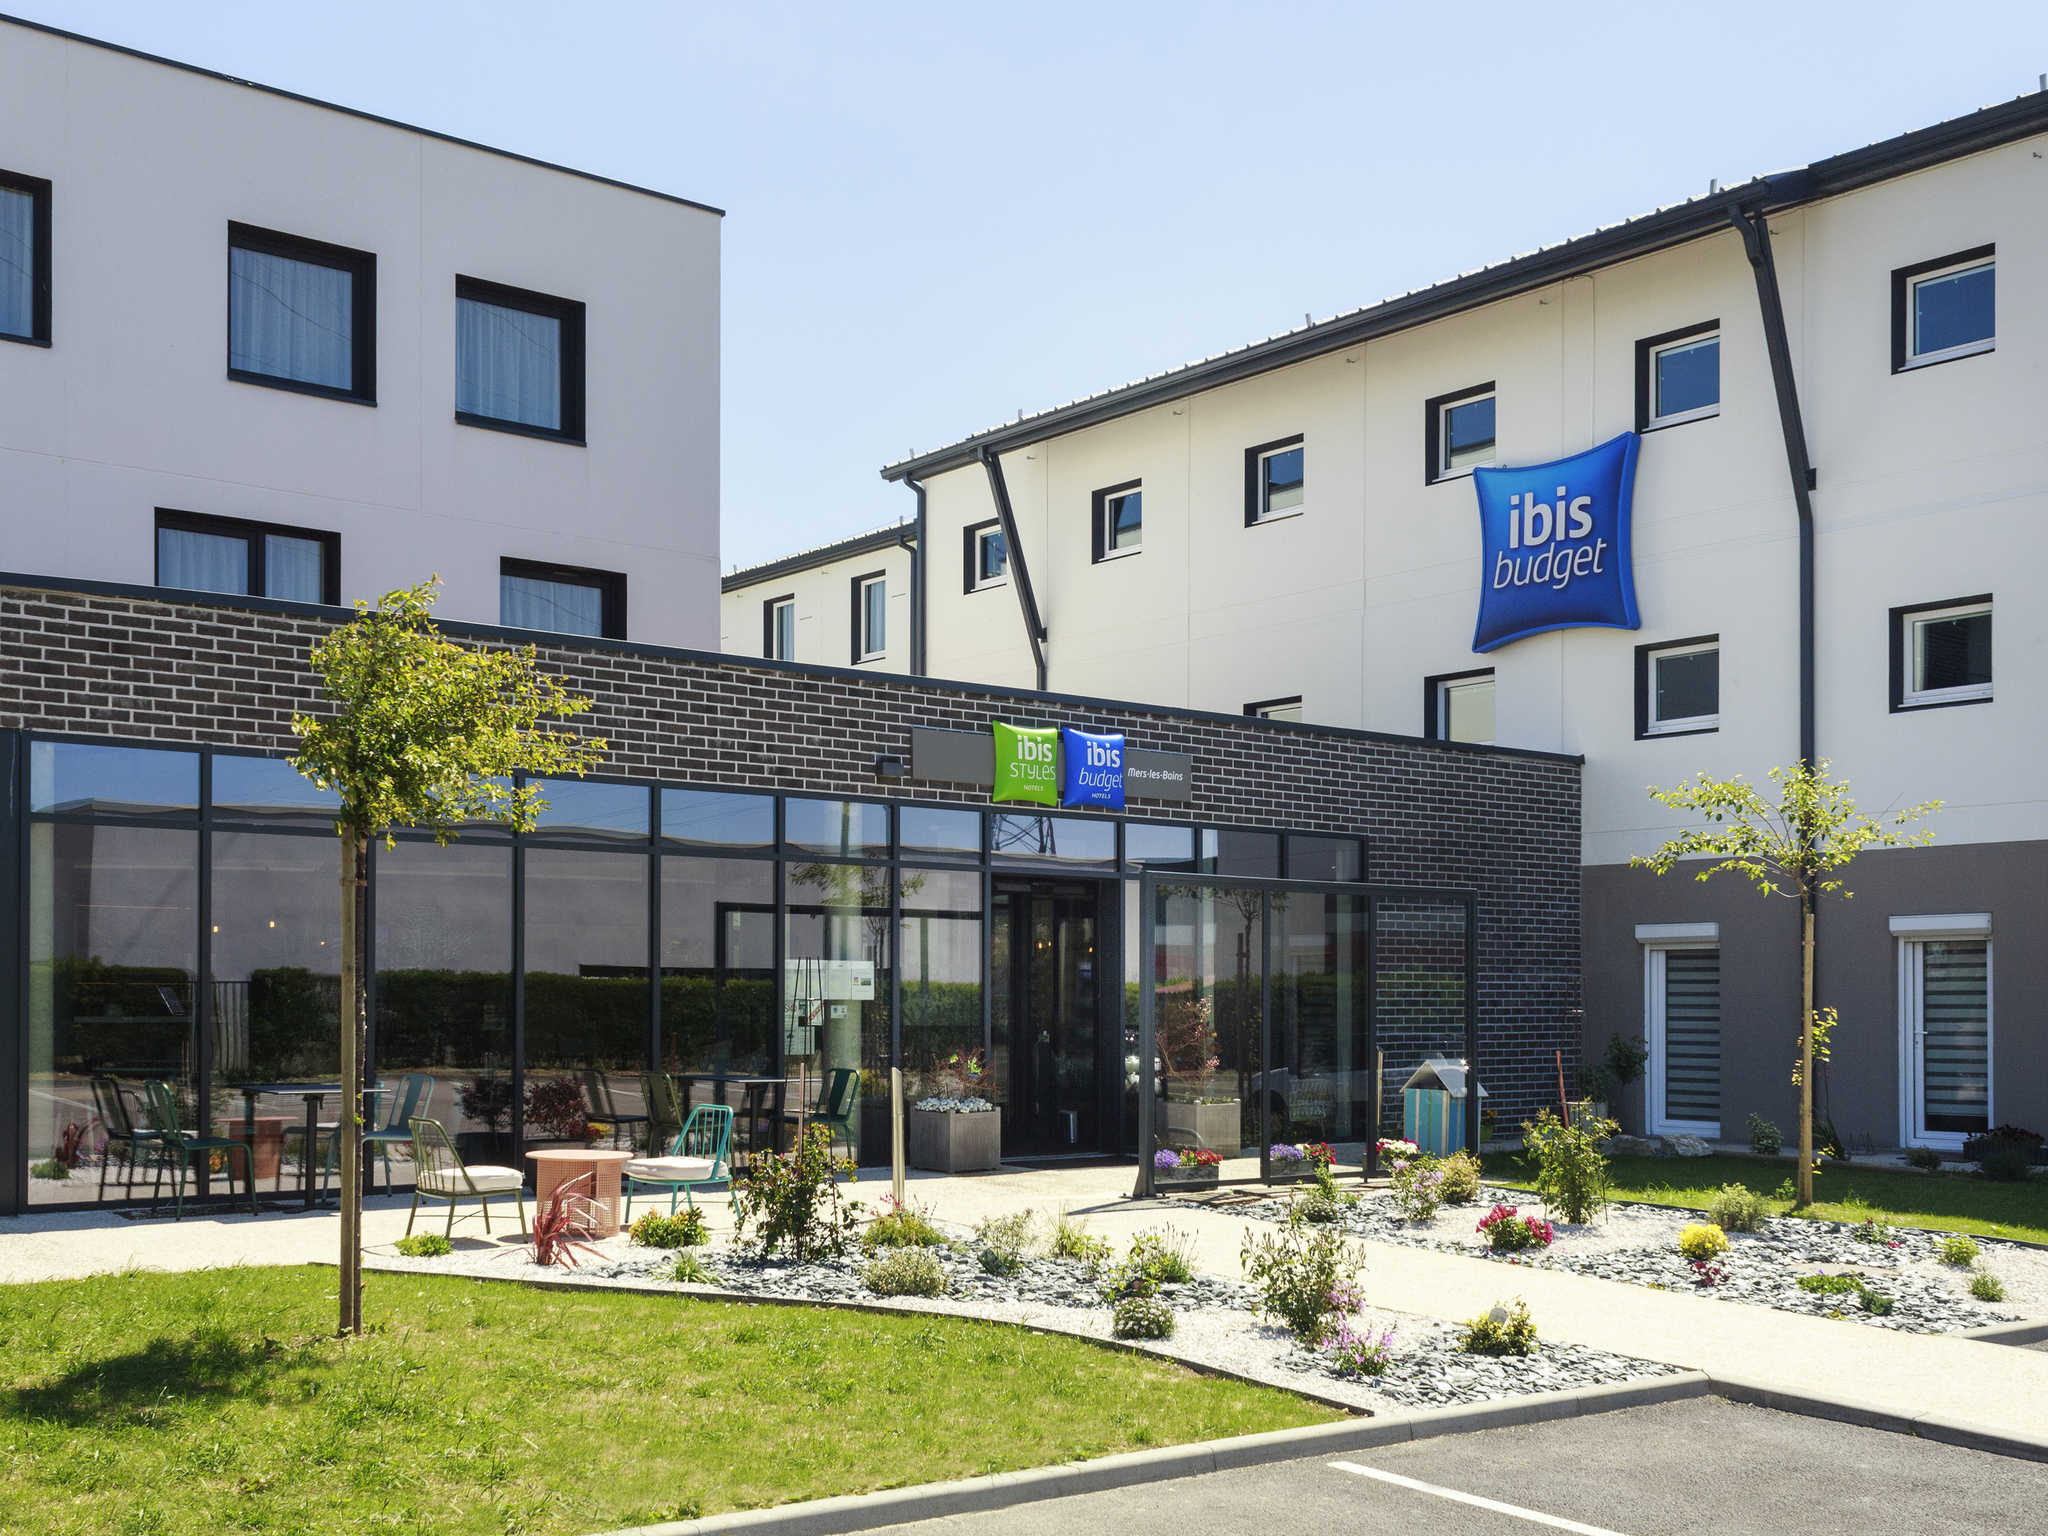 Hotel In Mers Les Bains Ibis Budget Le Treport Mers Les Bains